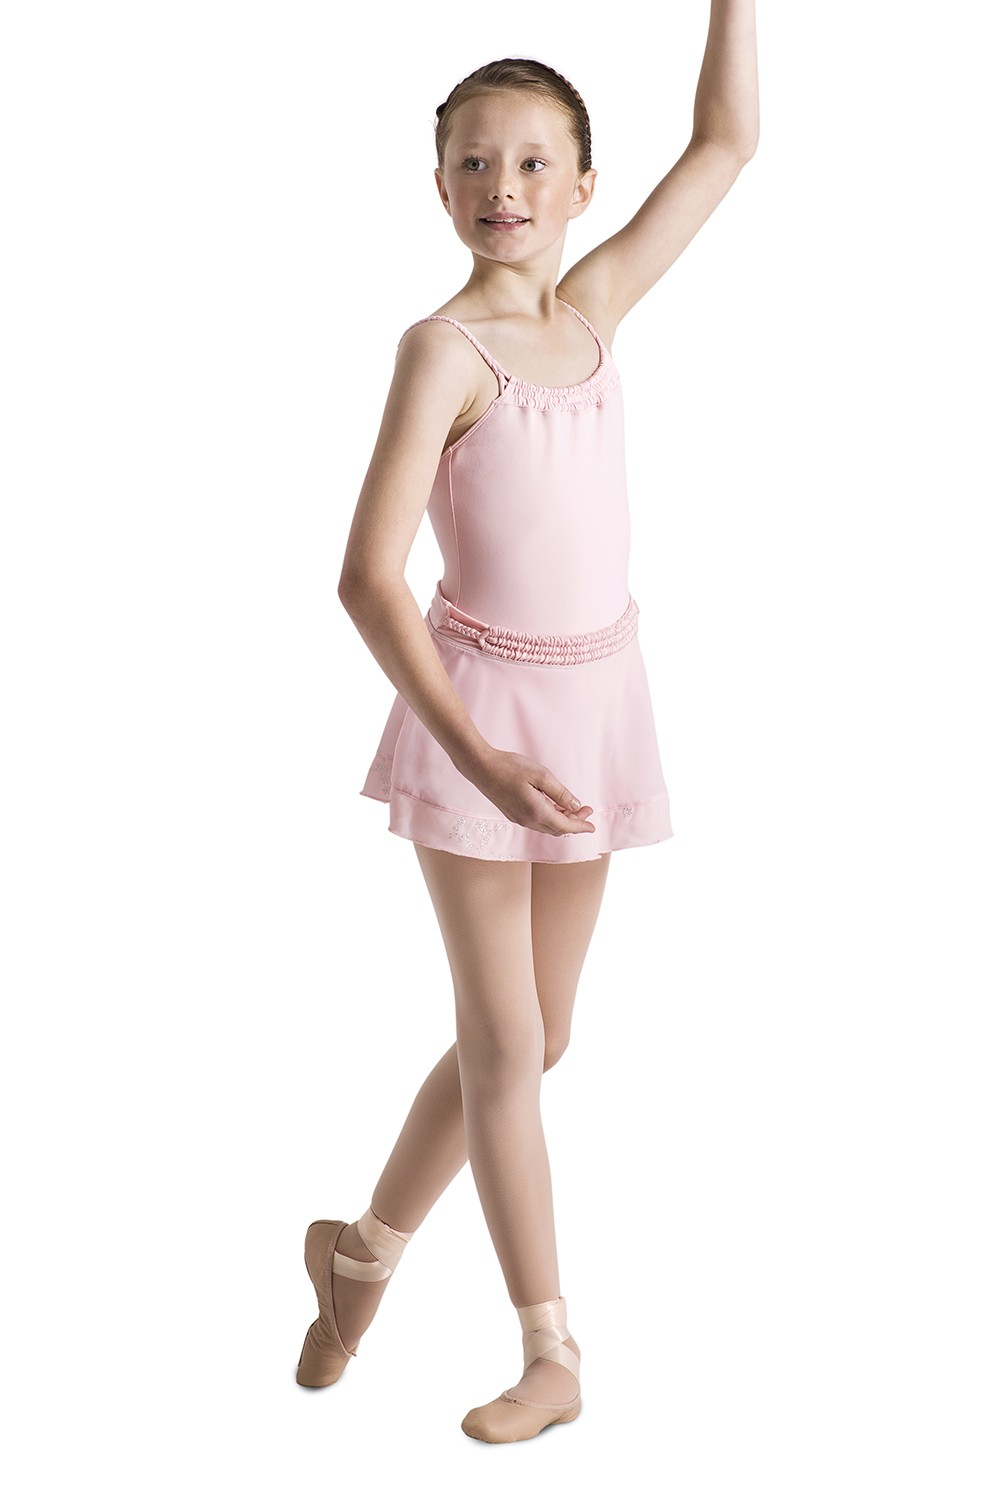 Plait Neckline Camisole Children's Dance Leotards